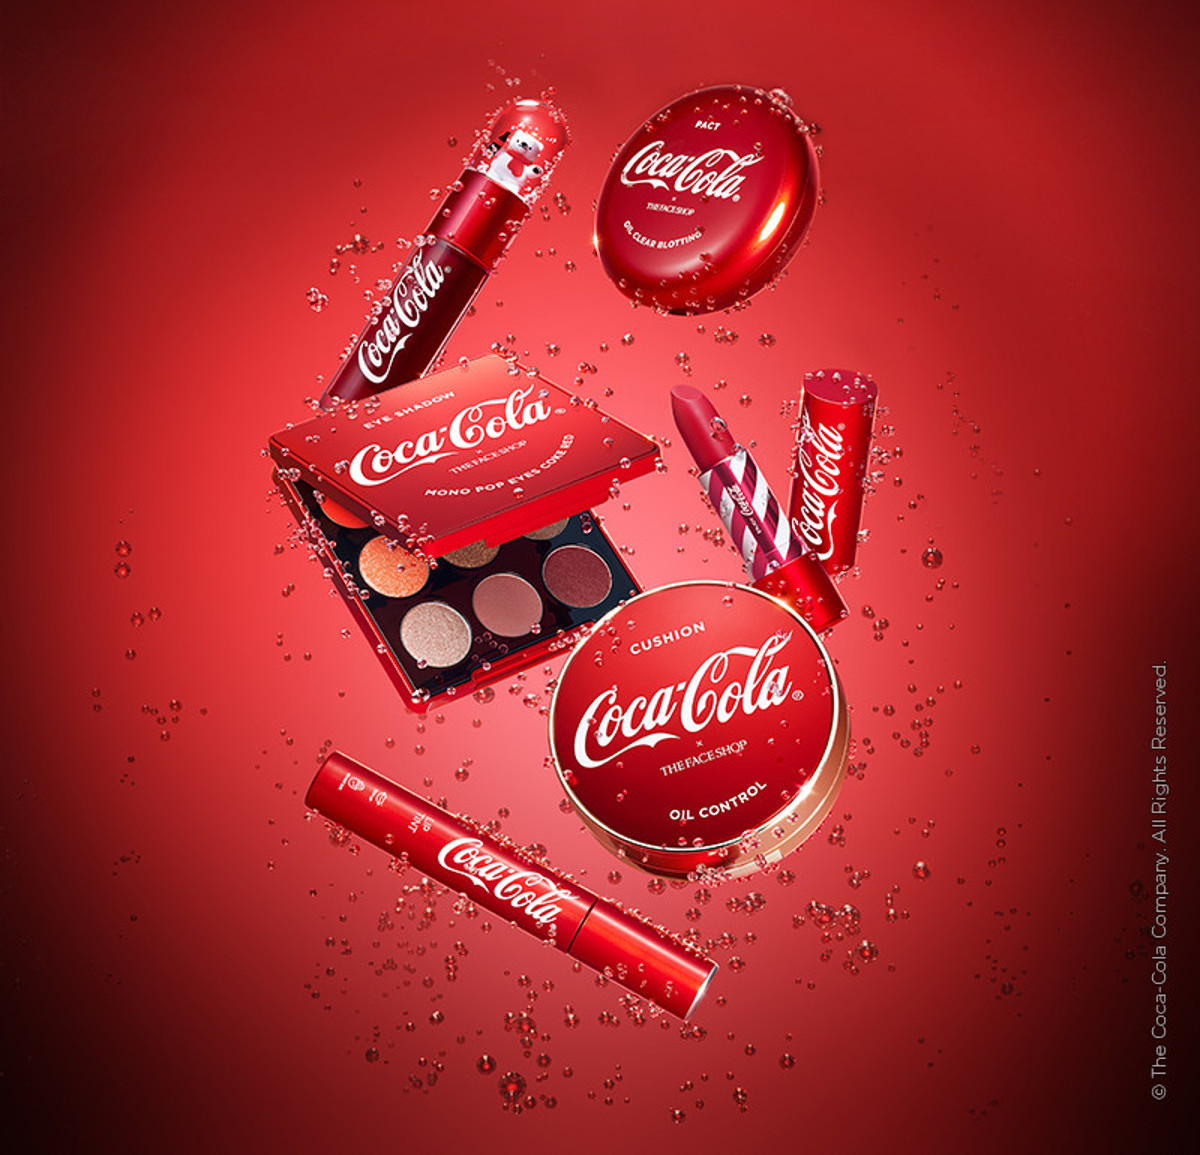 The Face Shop x Cola Cola Coca Cola Edition